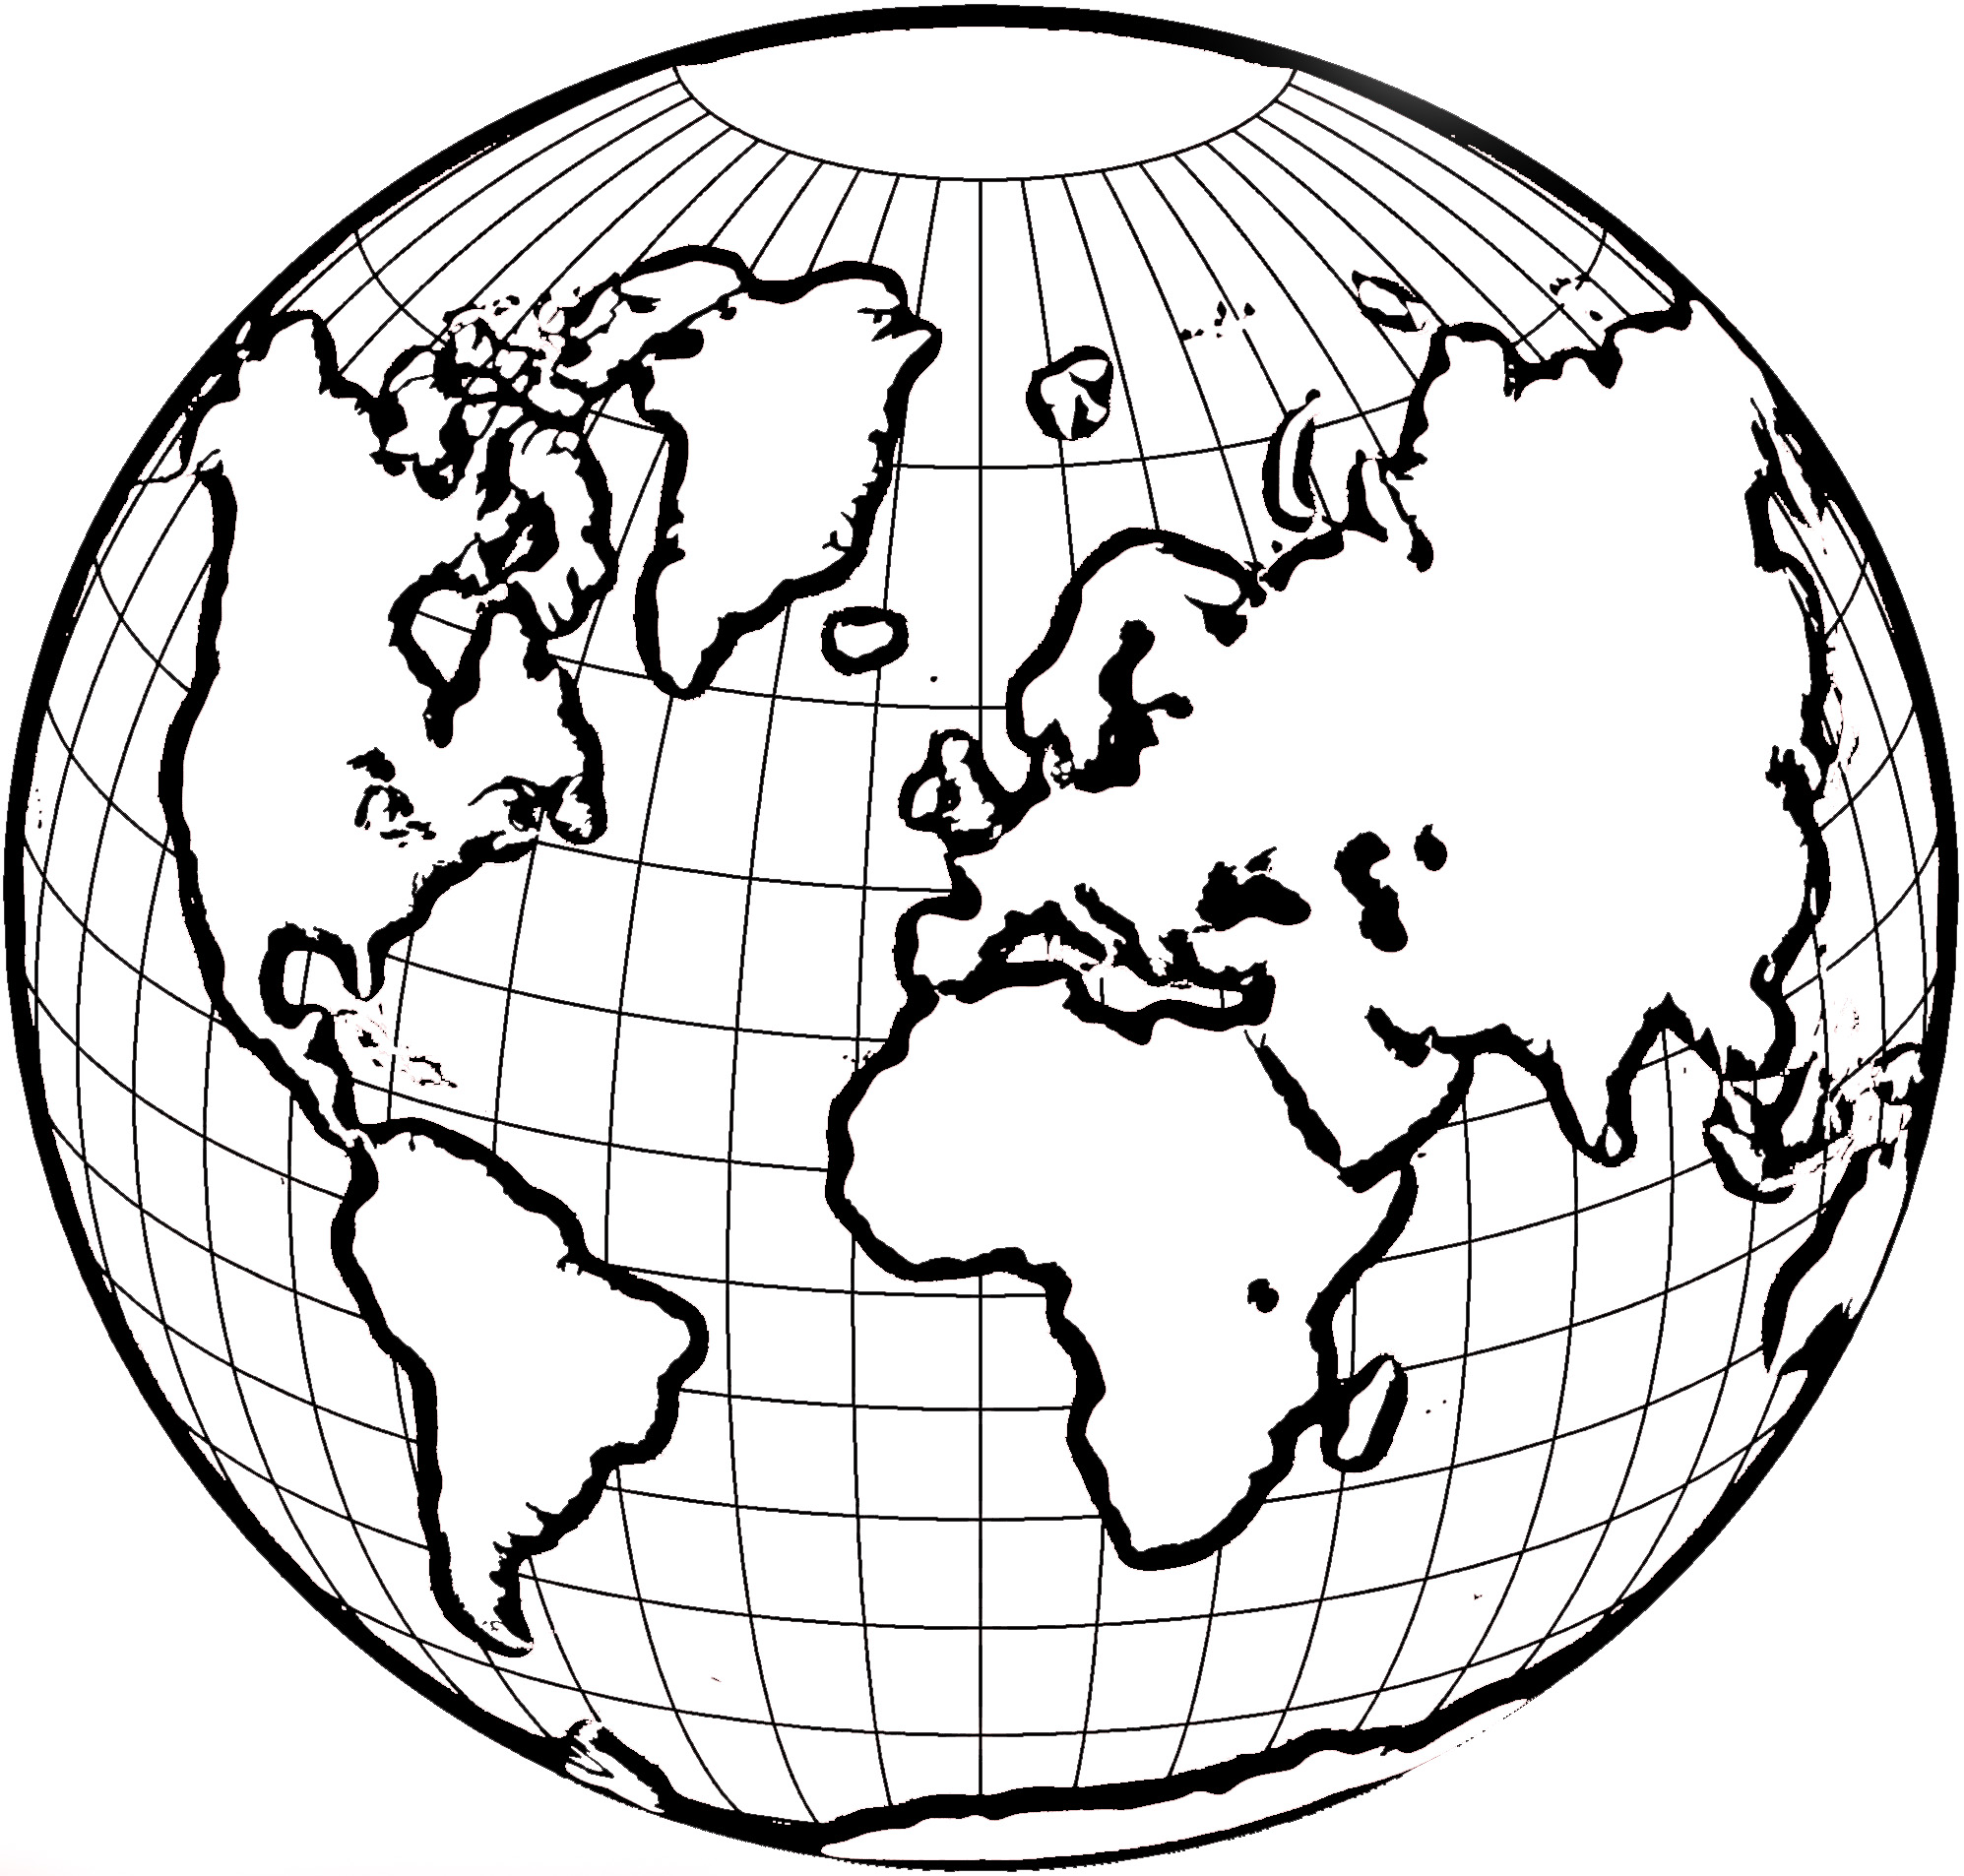 Earth globe drawing at getdrawings free for personal use earth 1995x1906 globe coloring my favorite pins pinterest globe tattoo gumiabroncs Image collections